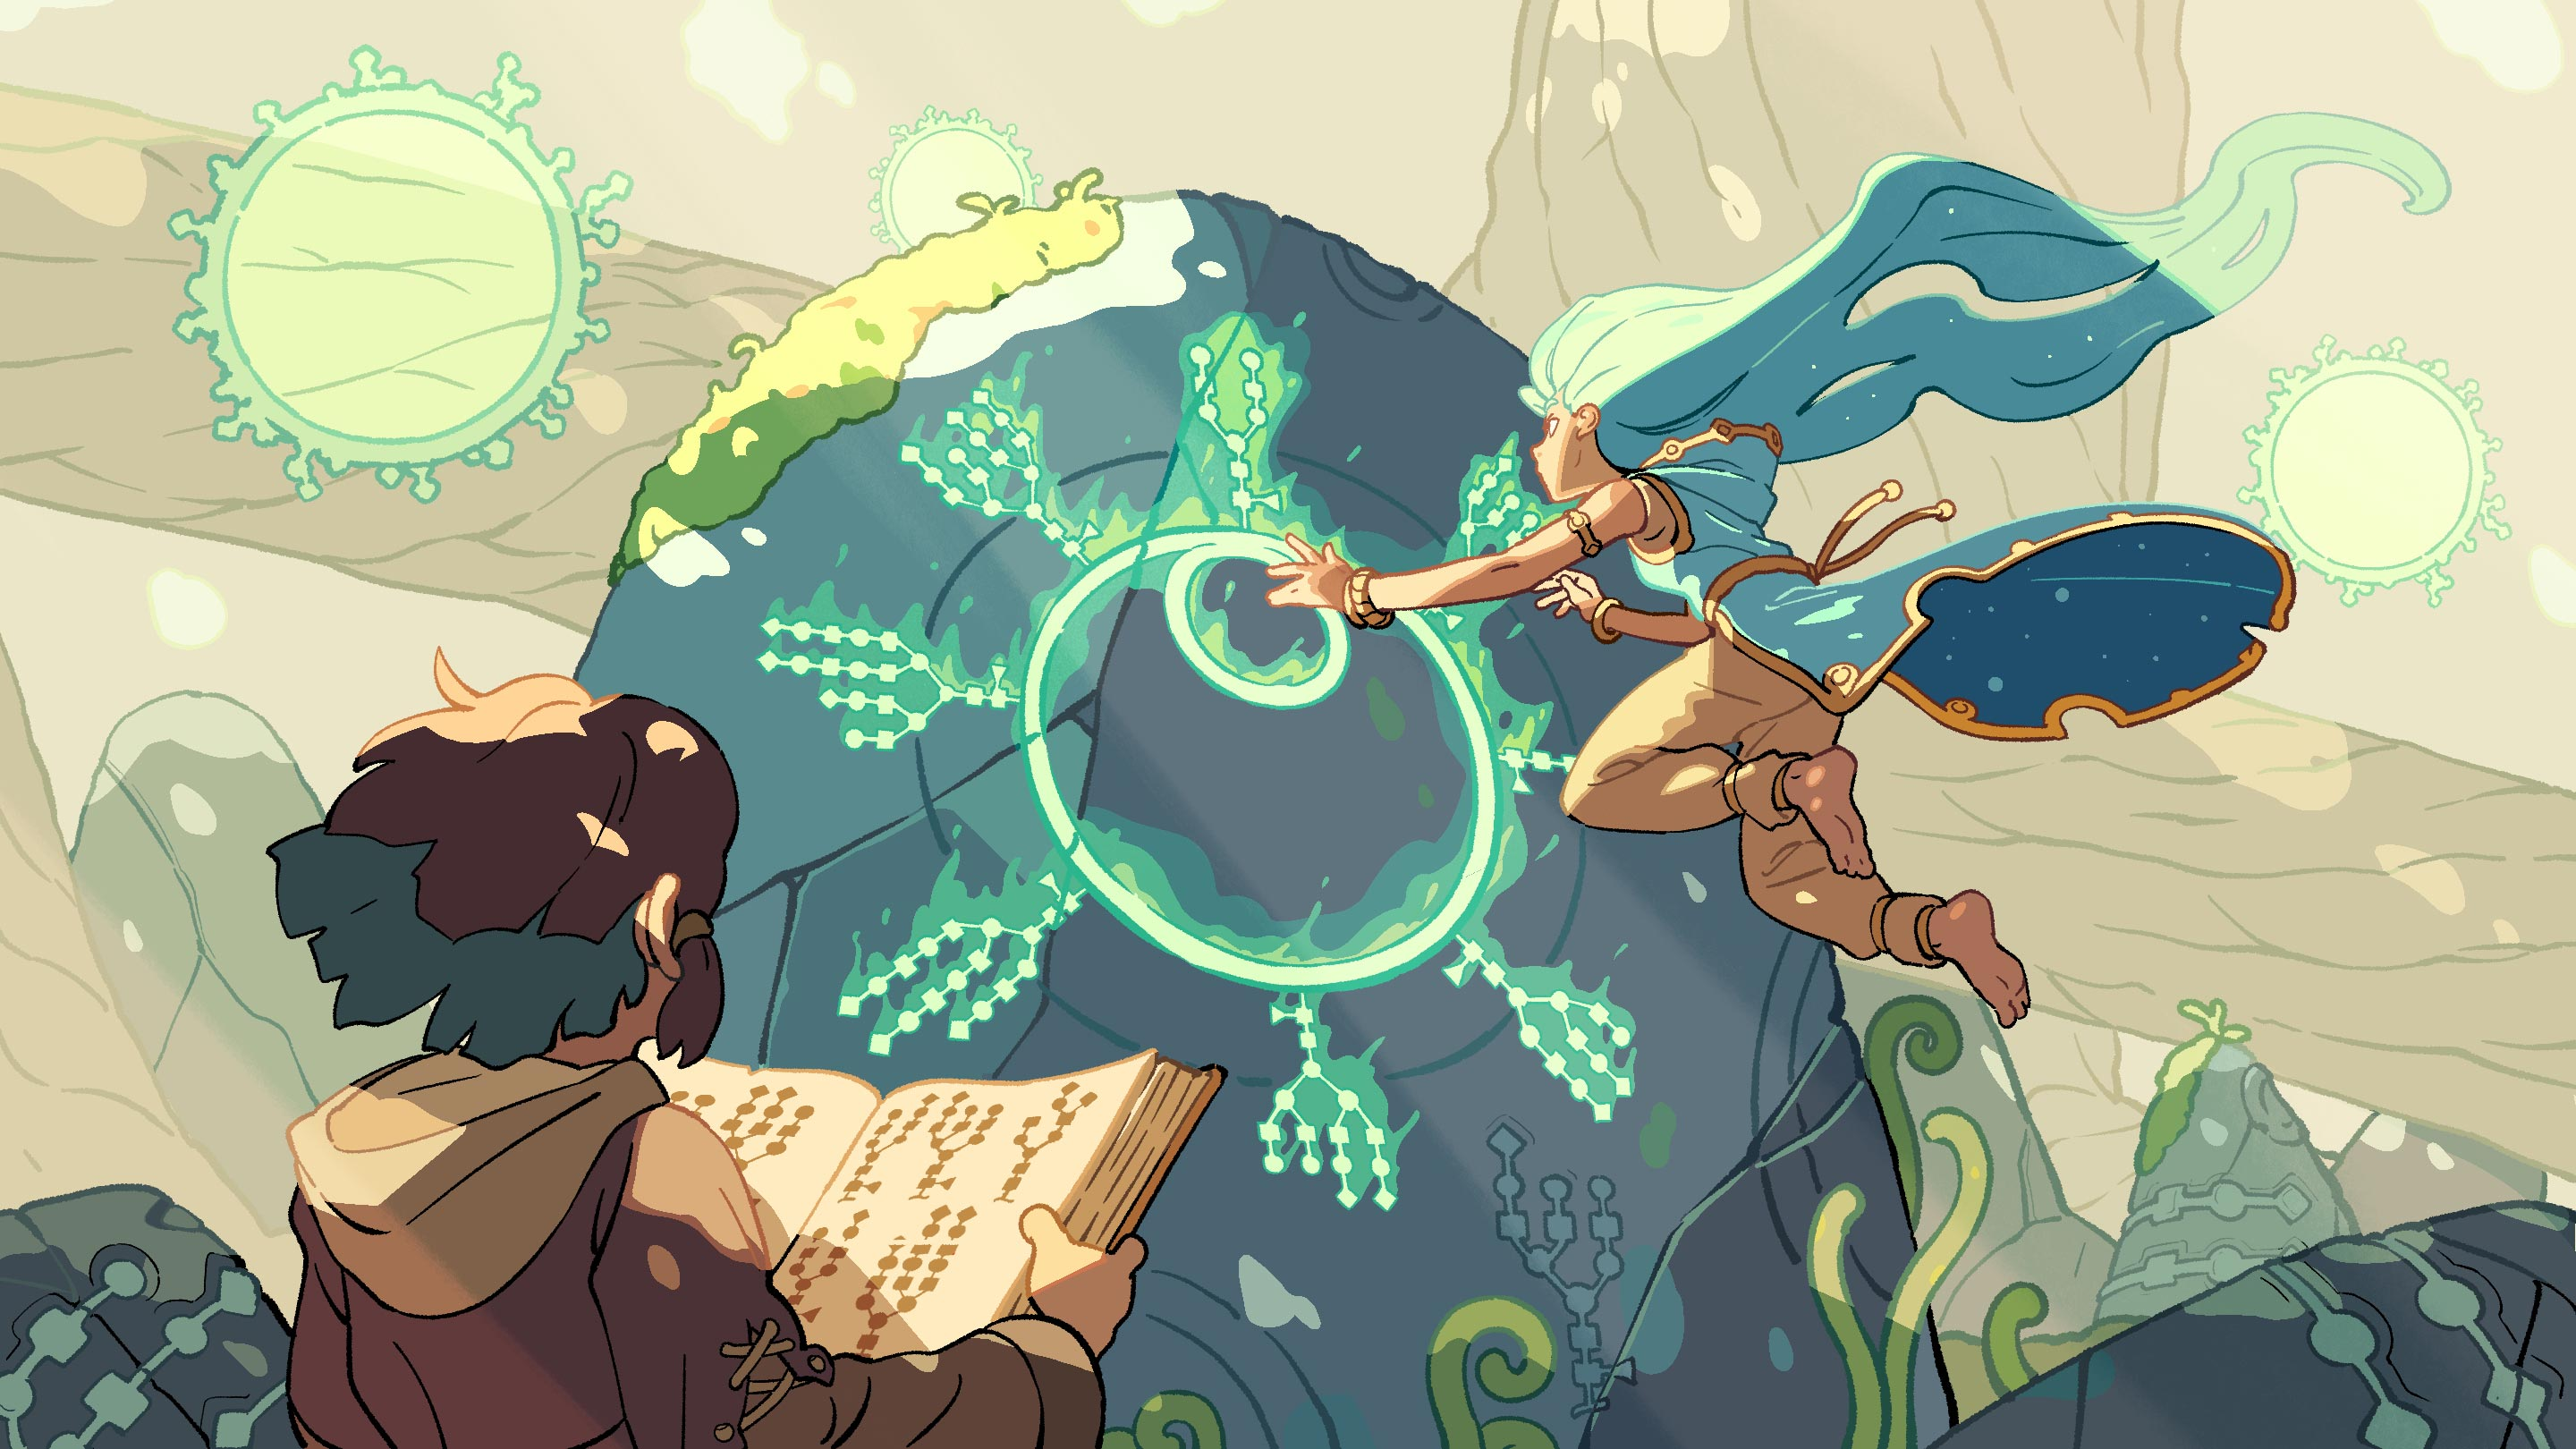 Illustrated scene showing characters reading glycan-shaped runes on a mystical sculpture shaped like a cell.